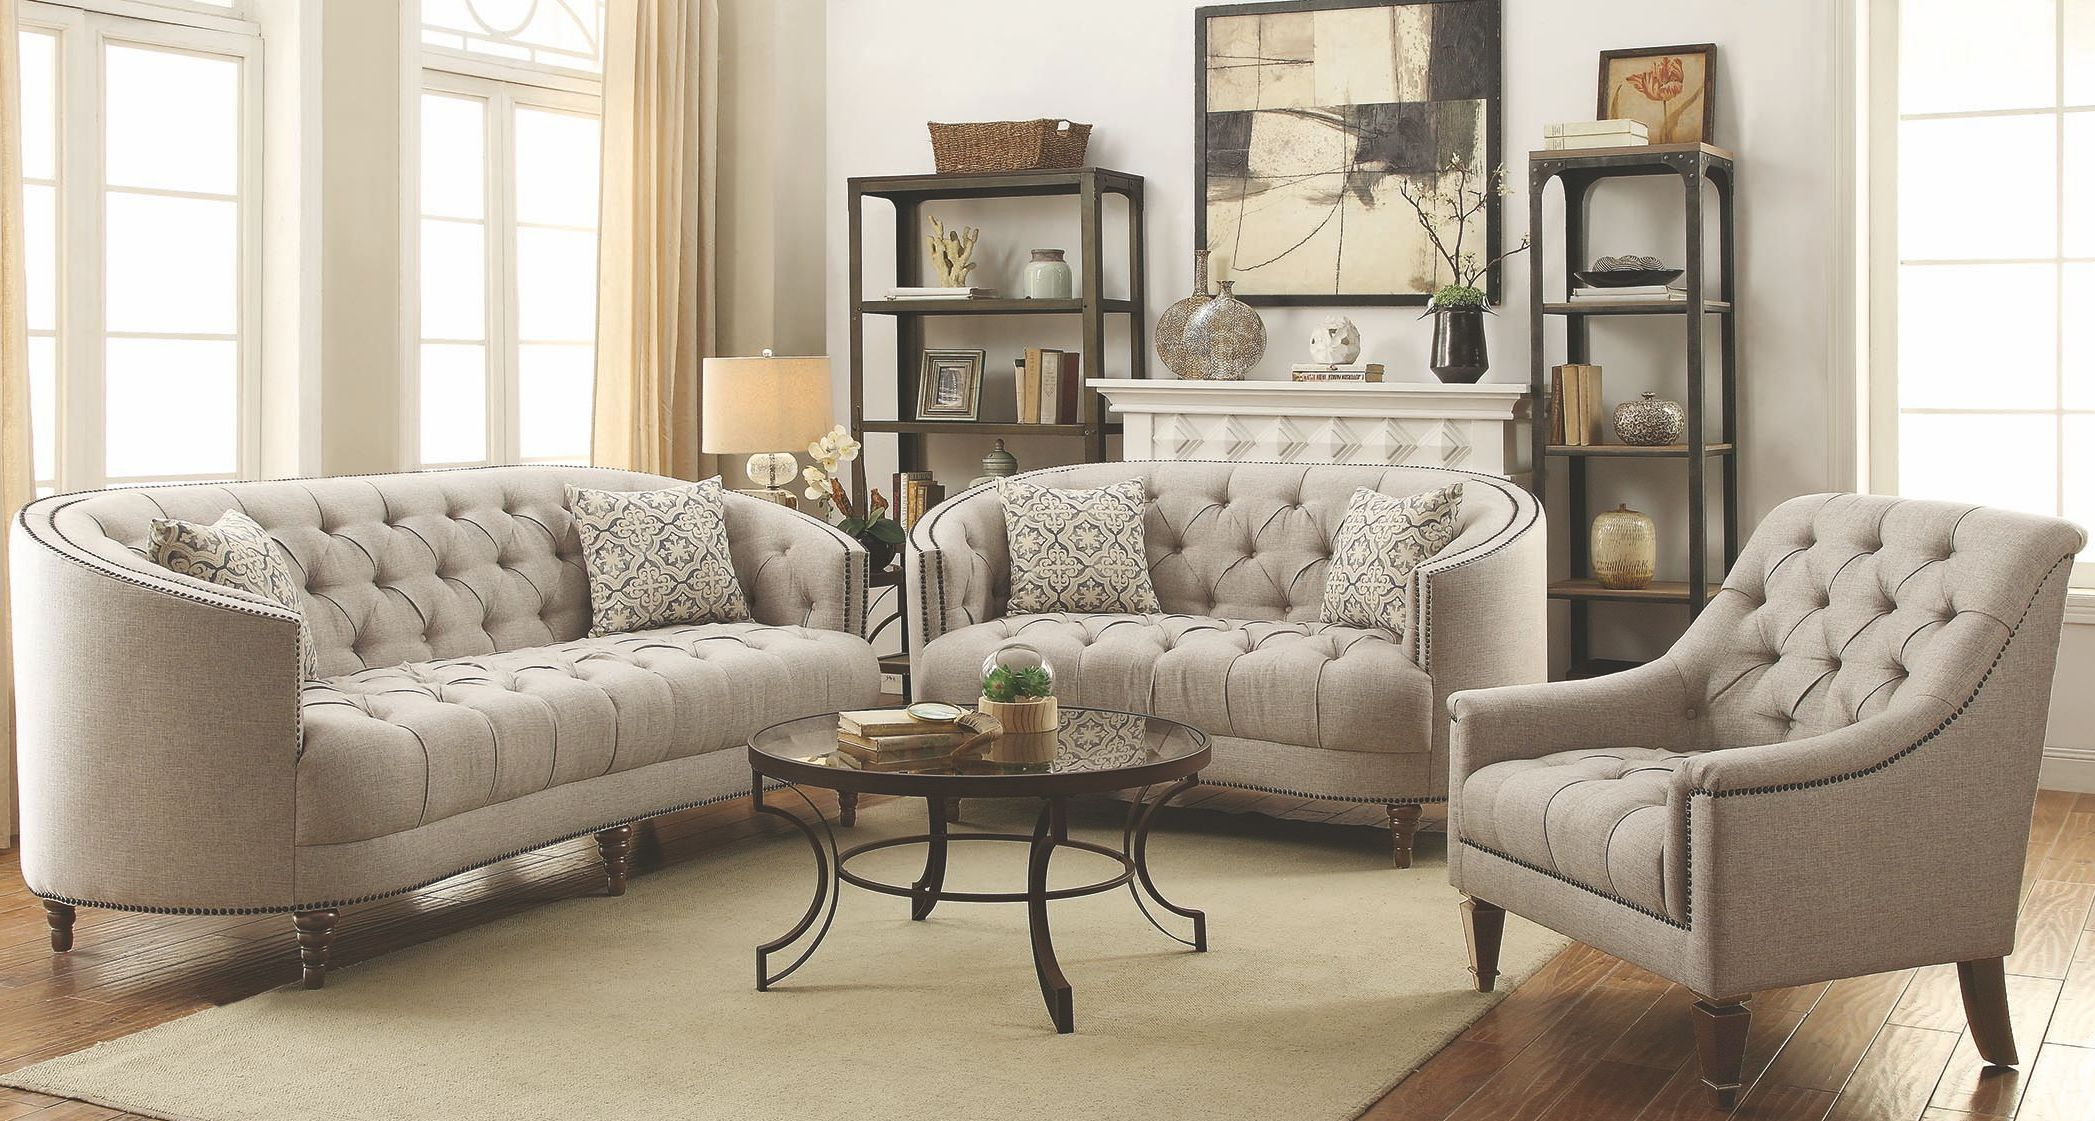 Coaster Avonlea Stone Grey Living Room Set Avonlea Collection 15 throughout Free Living Room Set